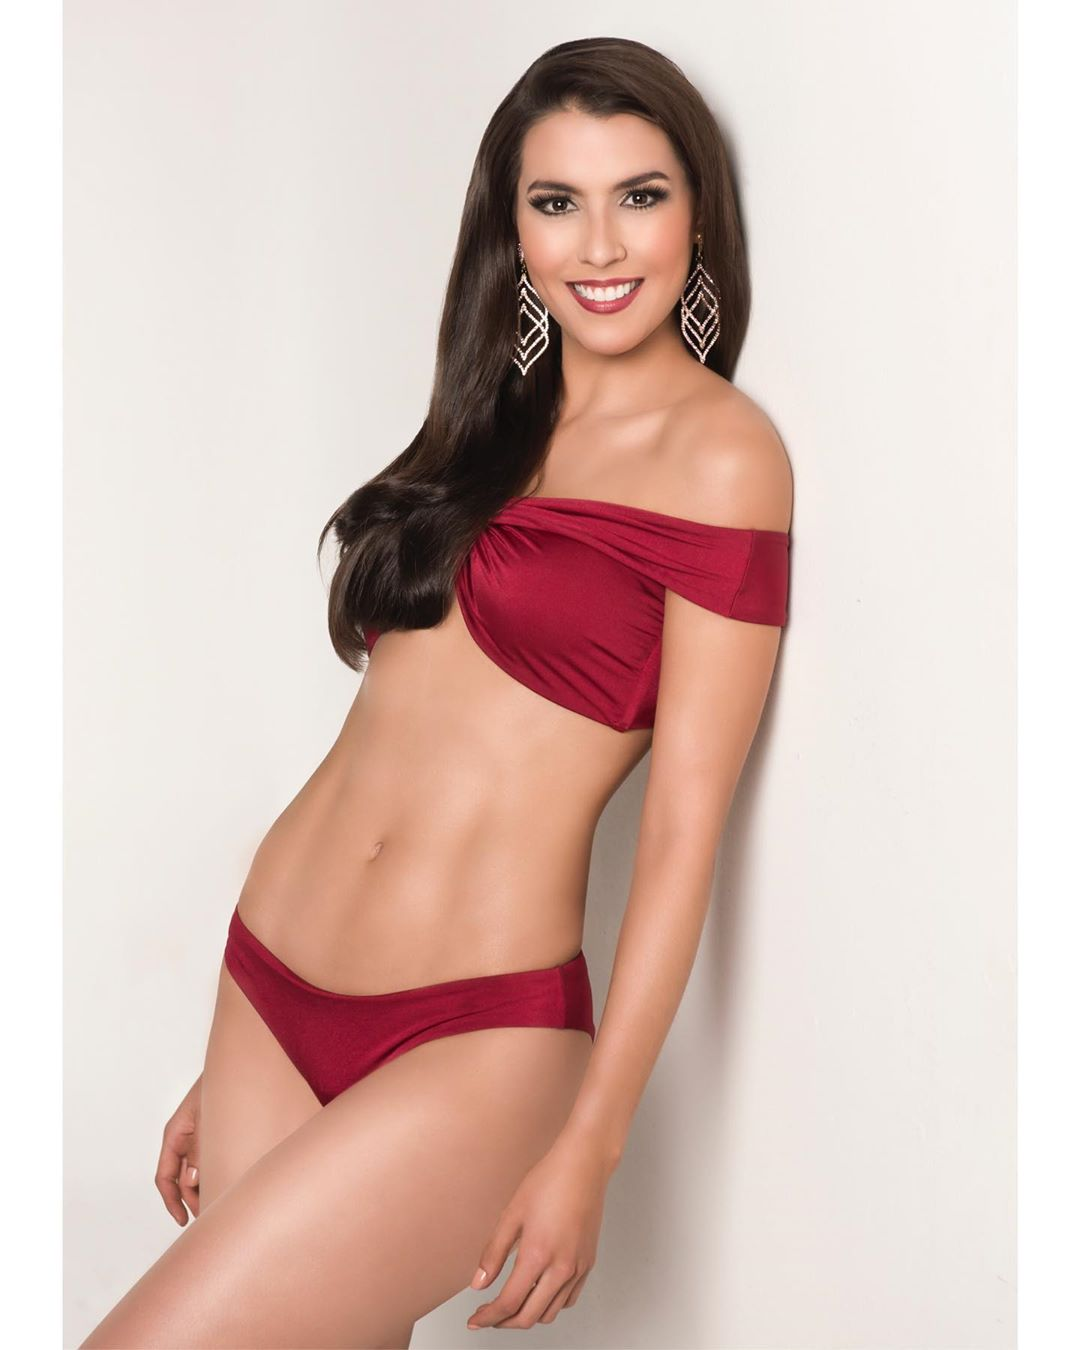 adriana rugeles, miss europe continental colombia 2020-2021. 11710910